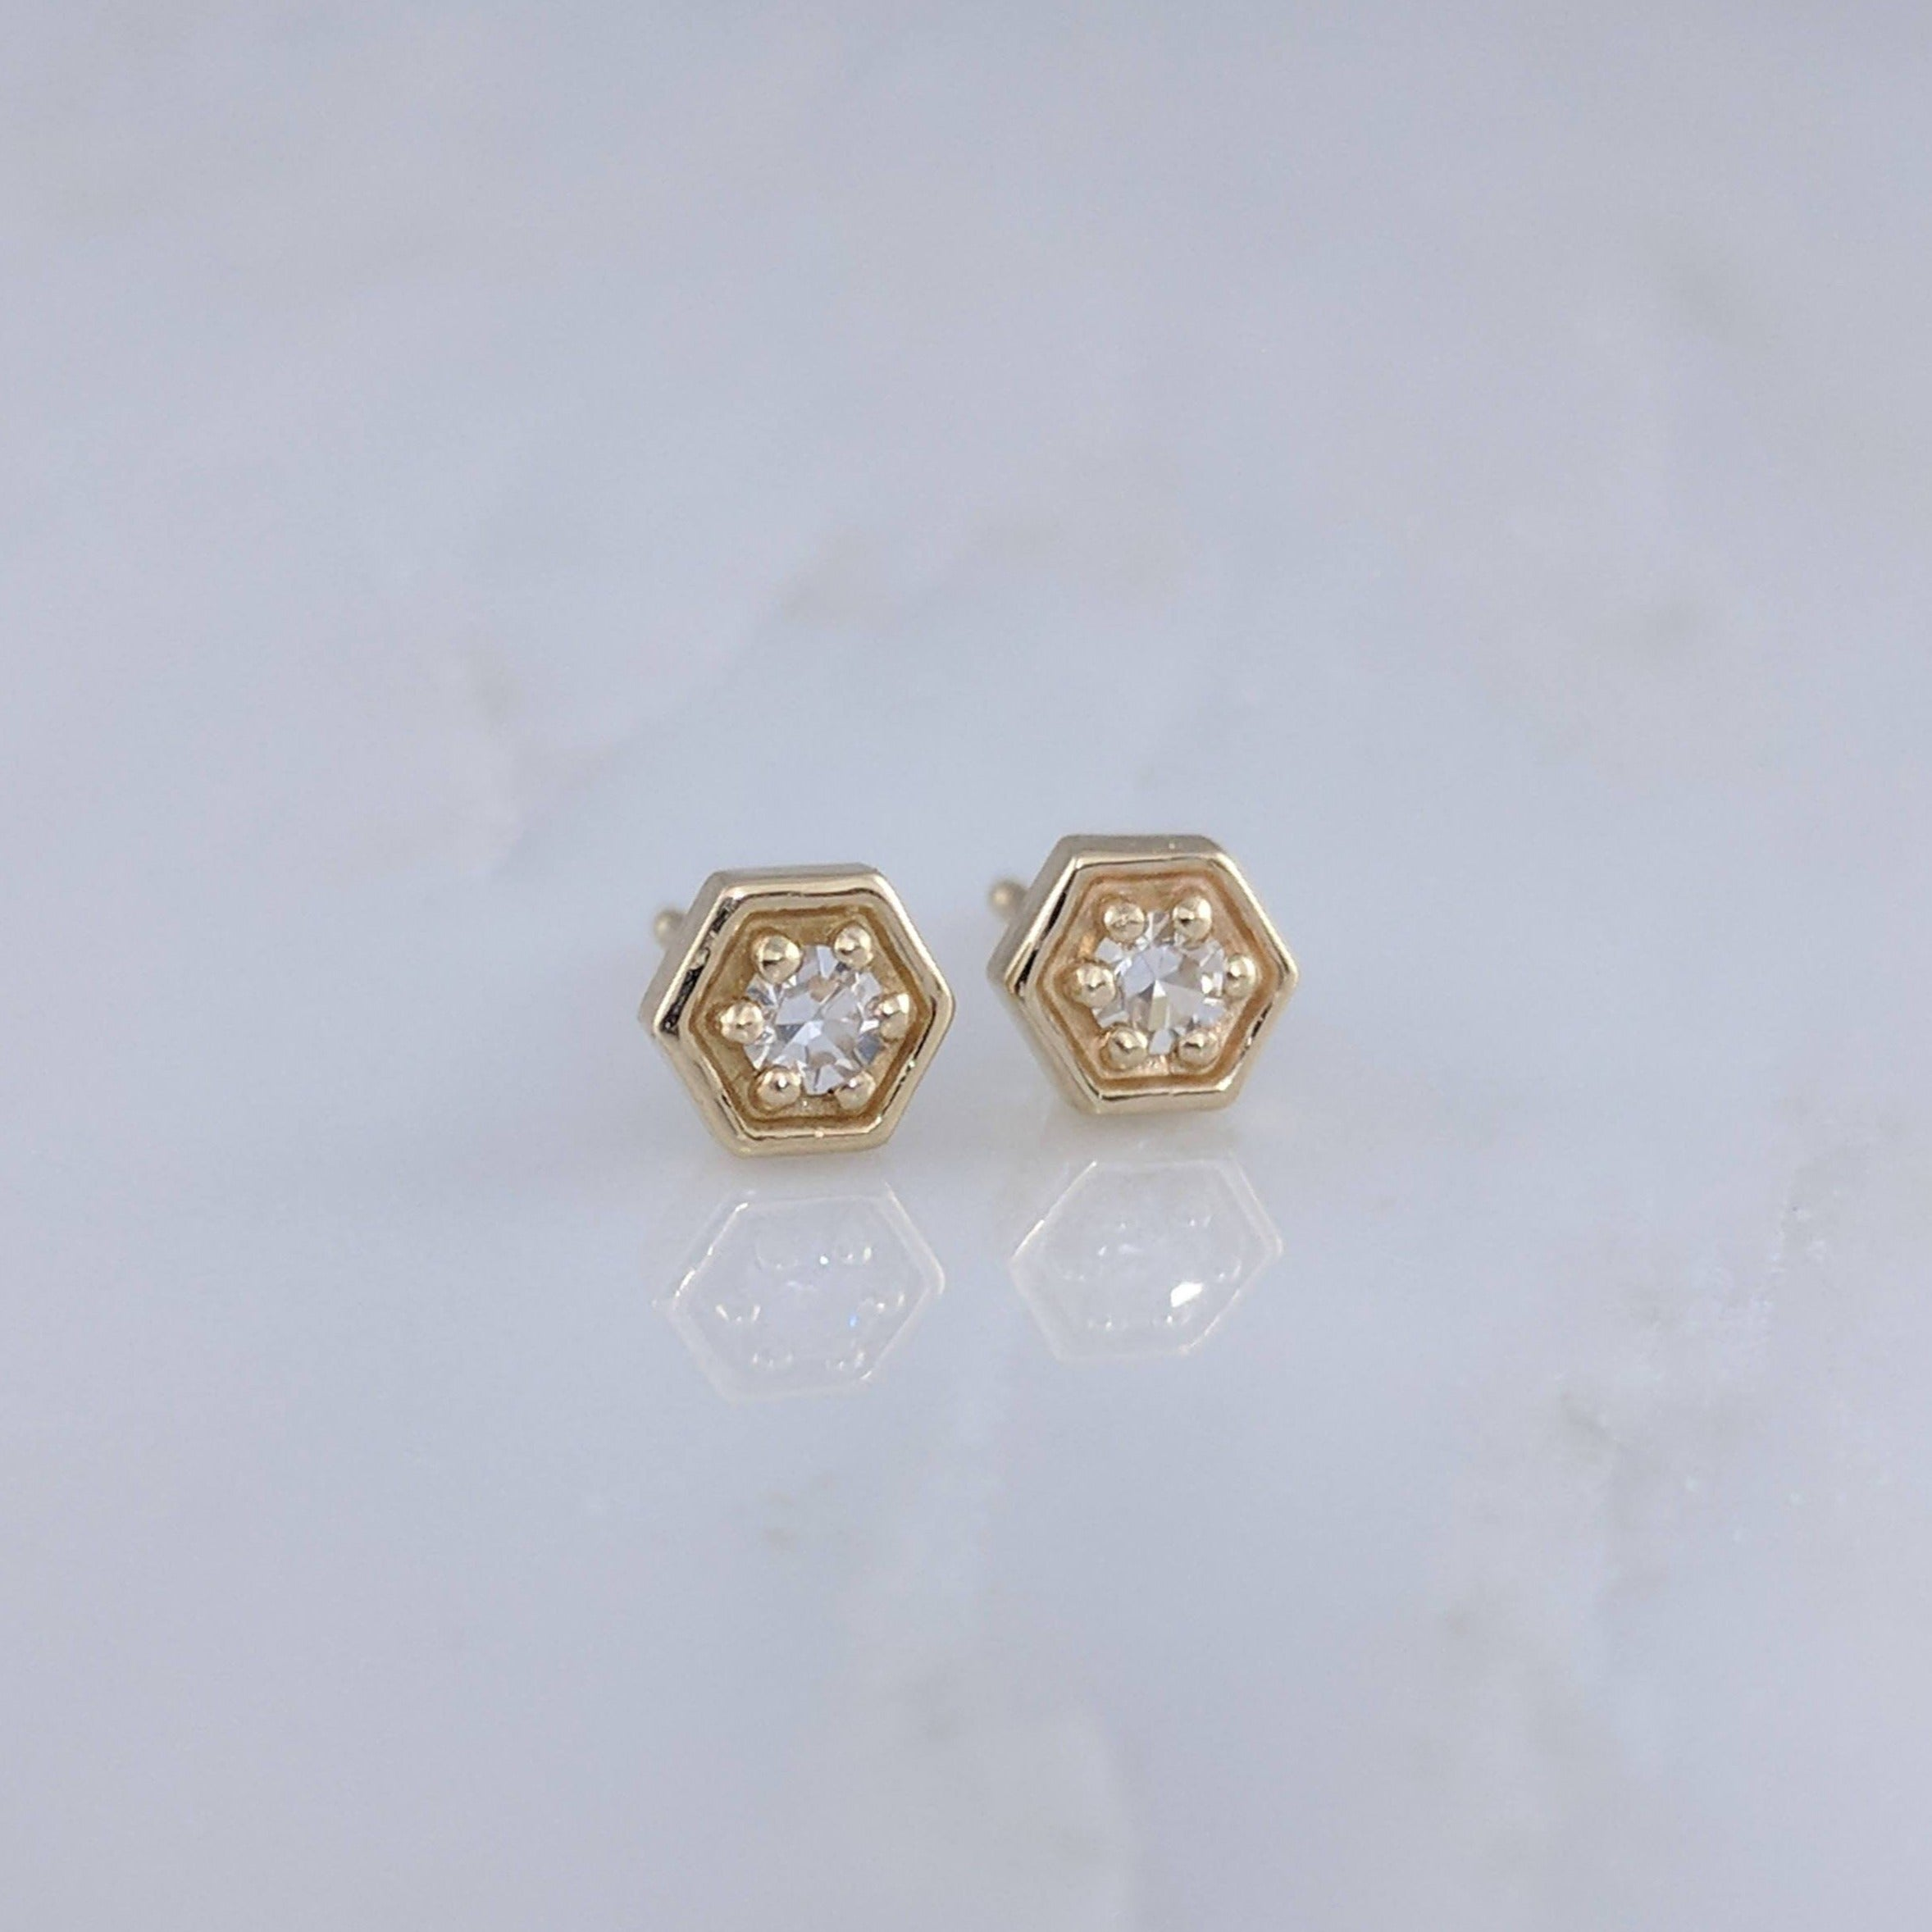 Tiny Diamond Hexagon Stud Earrings in 14K Yellow Gold